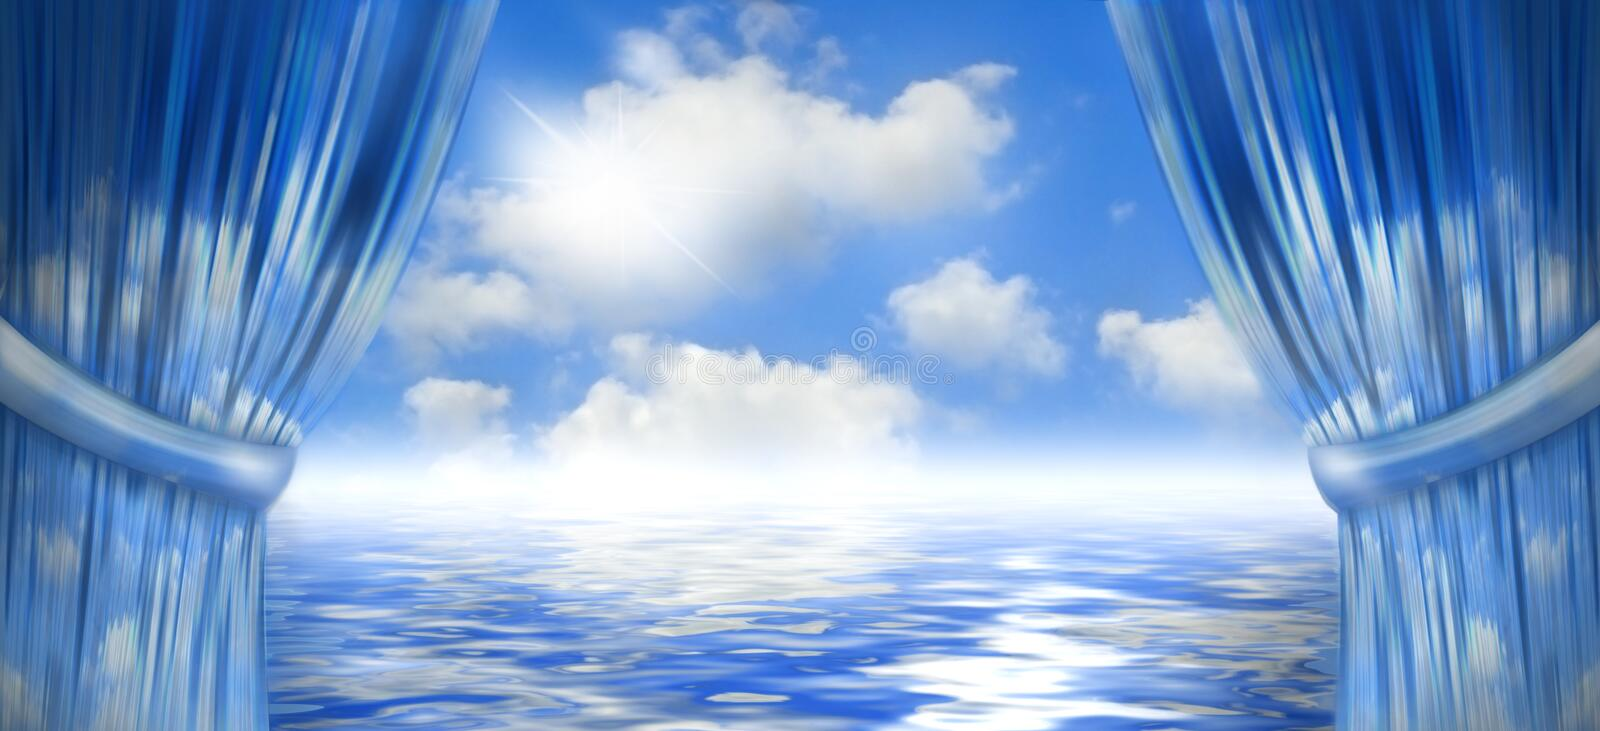 Blue skies and water stock illustration